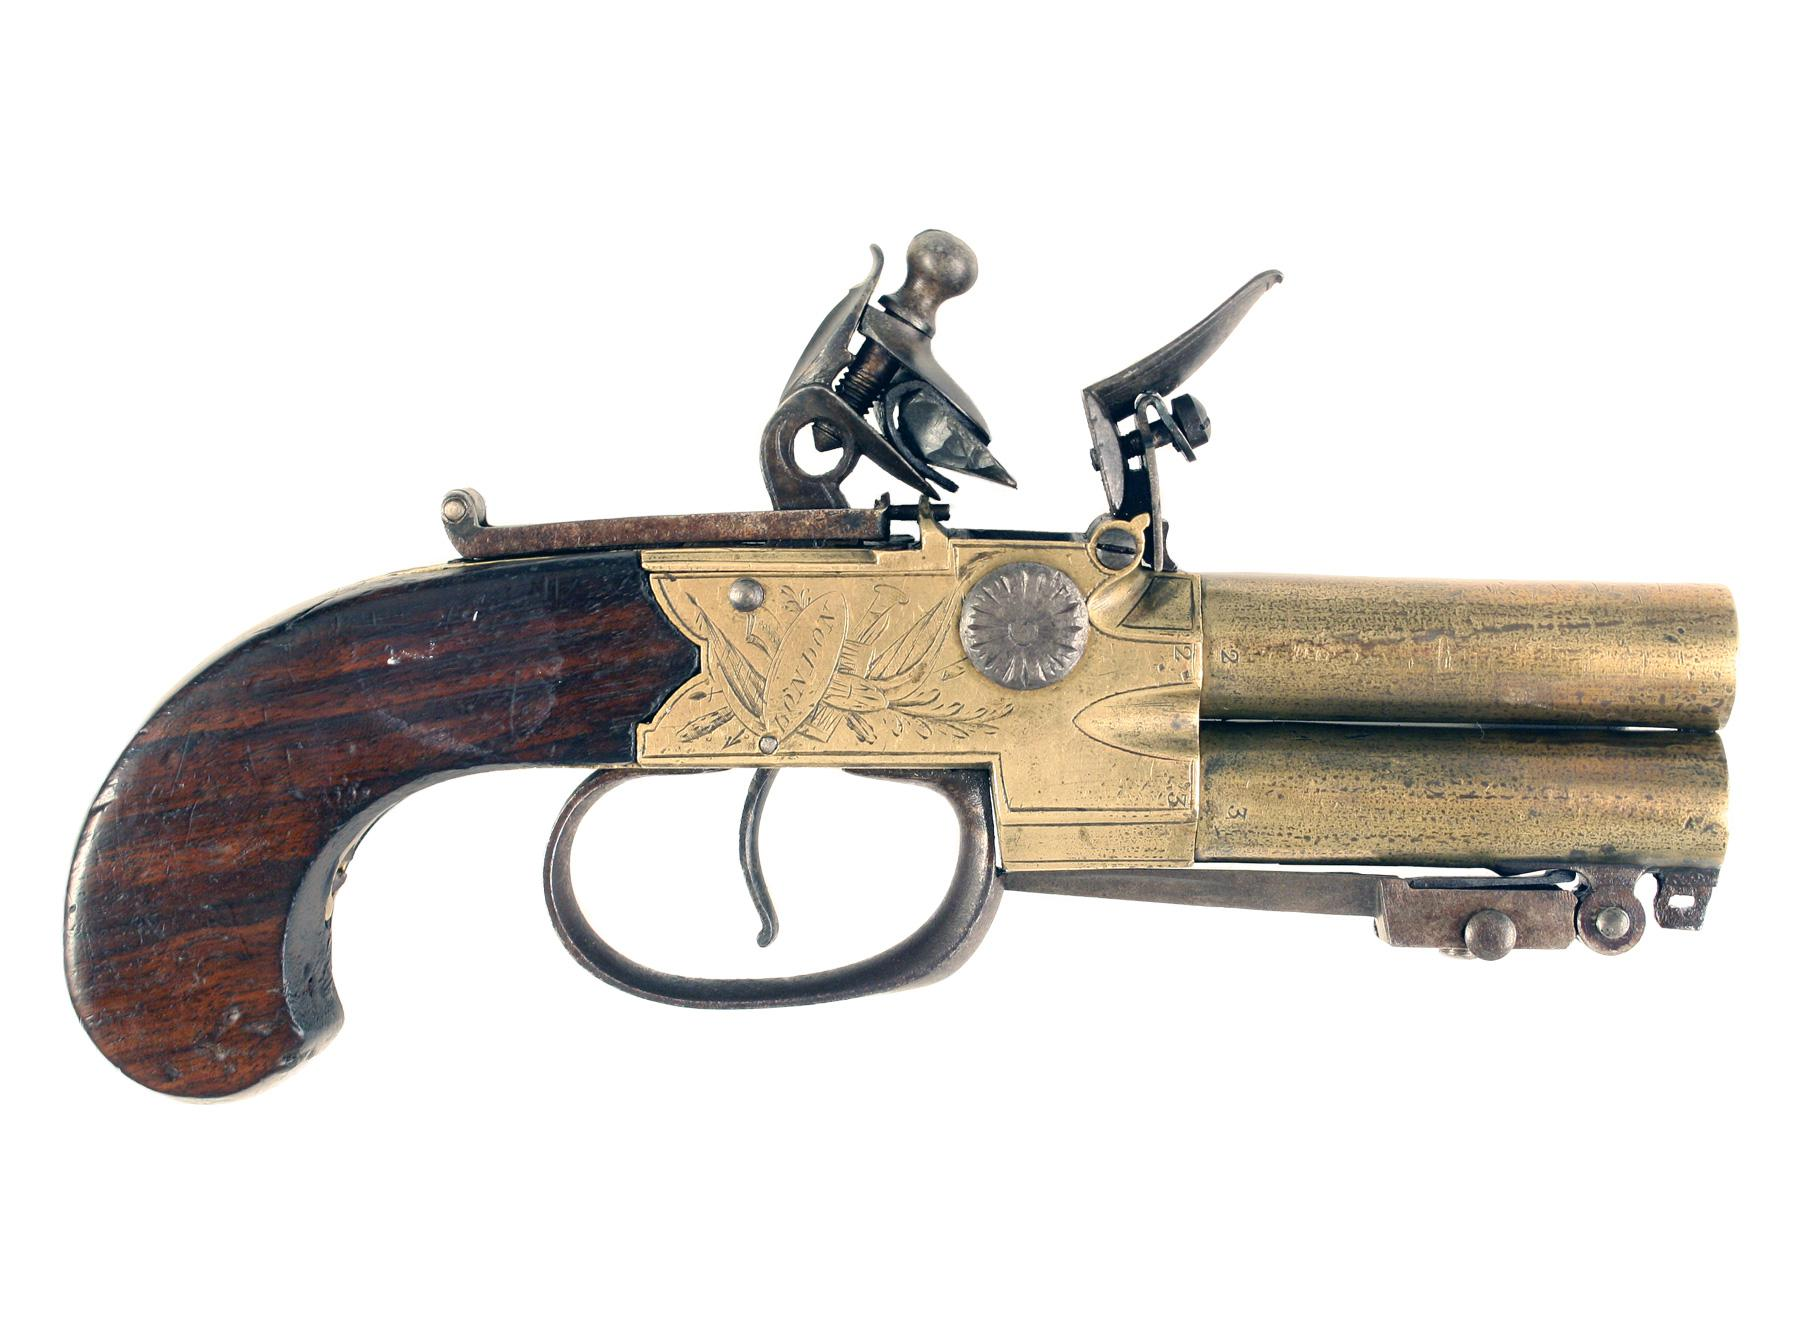 A Flintlock Tap-Action Pistol with Bayonet